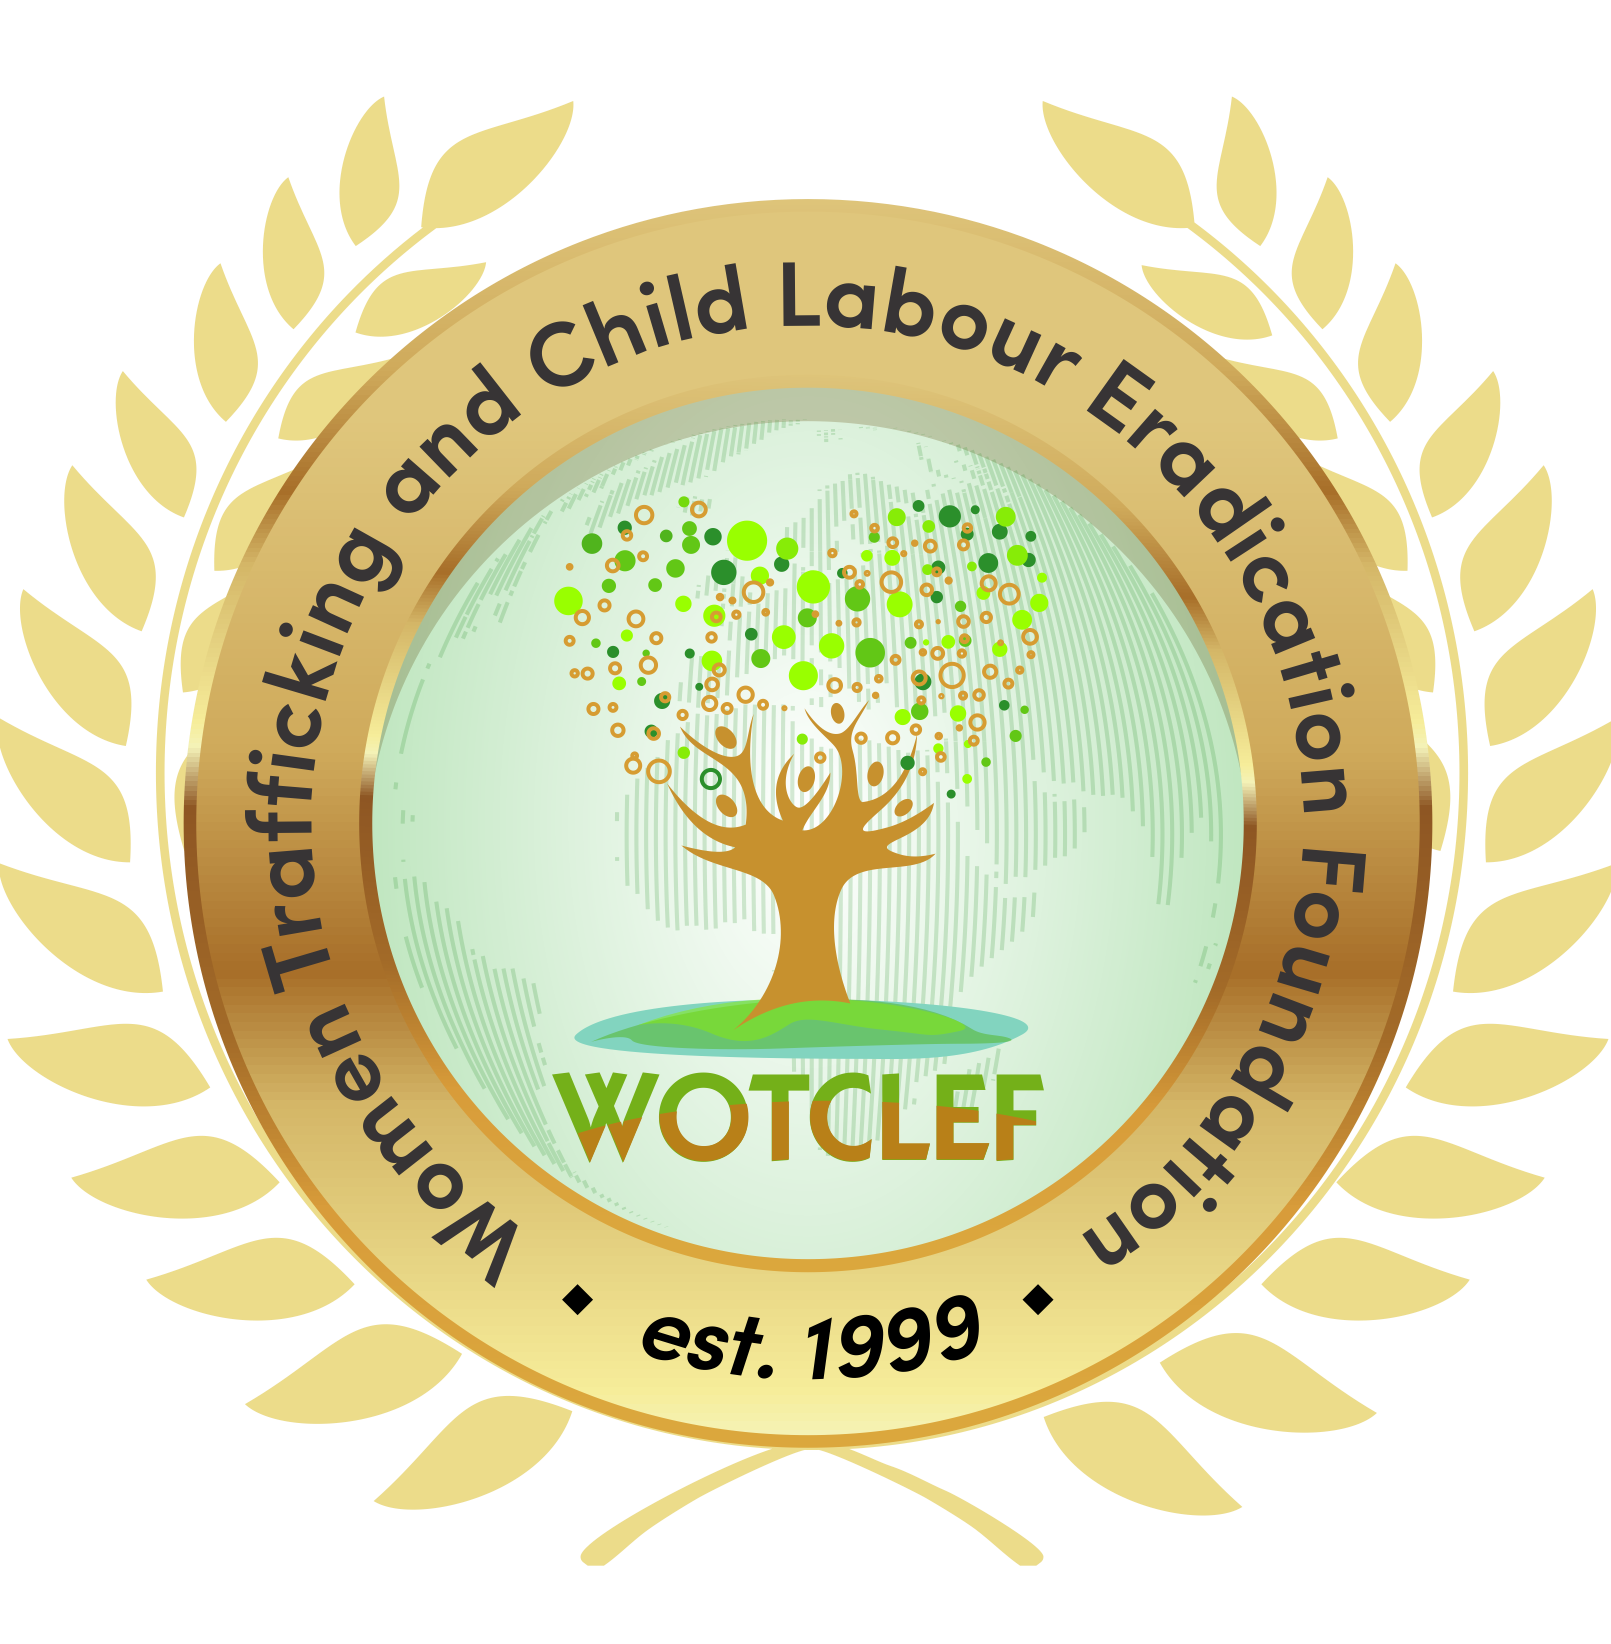 Women Trafficking and Child Labour Eradication Foundation (WOTCLEF) logo on clear background, linking to website